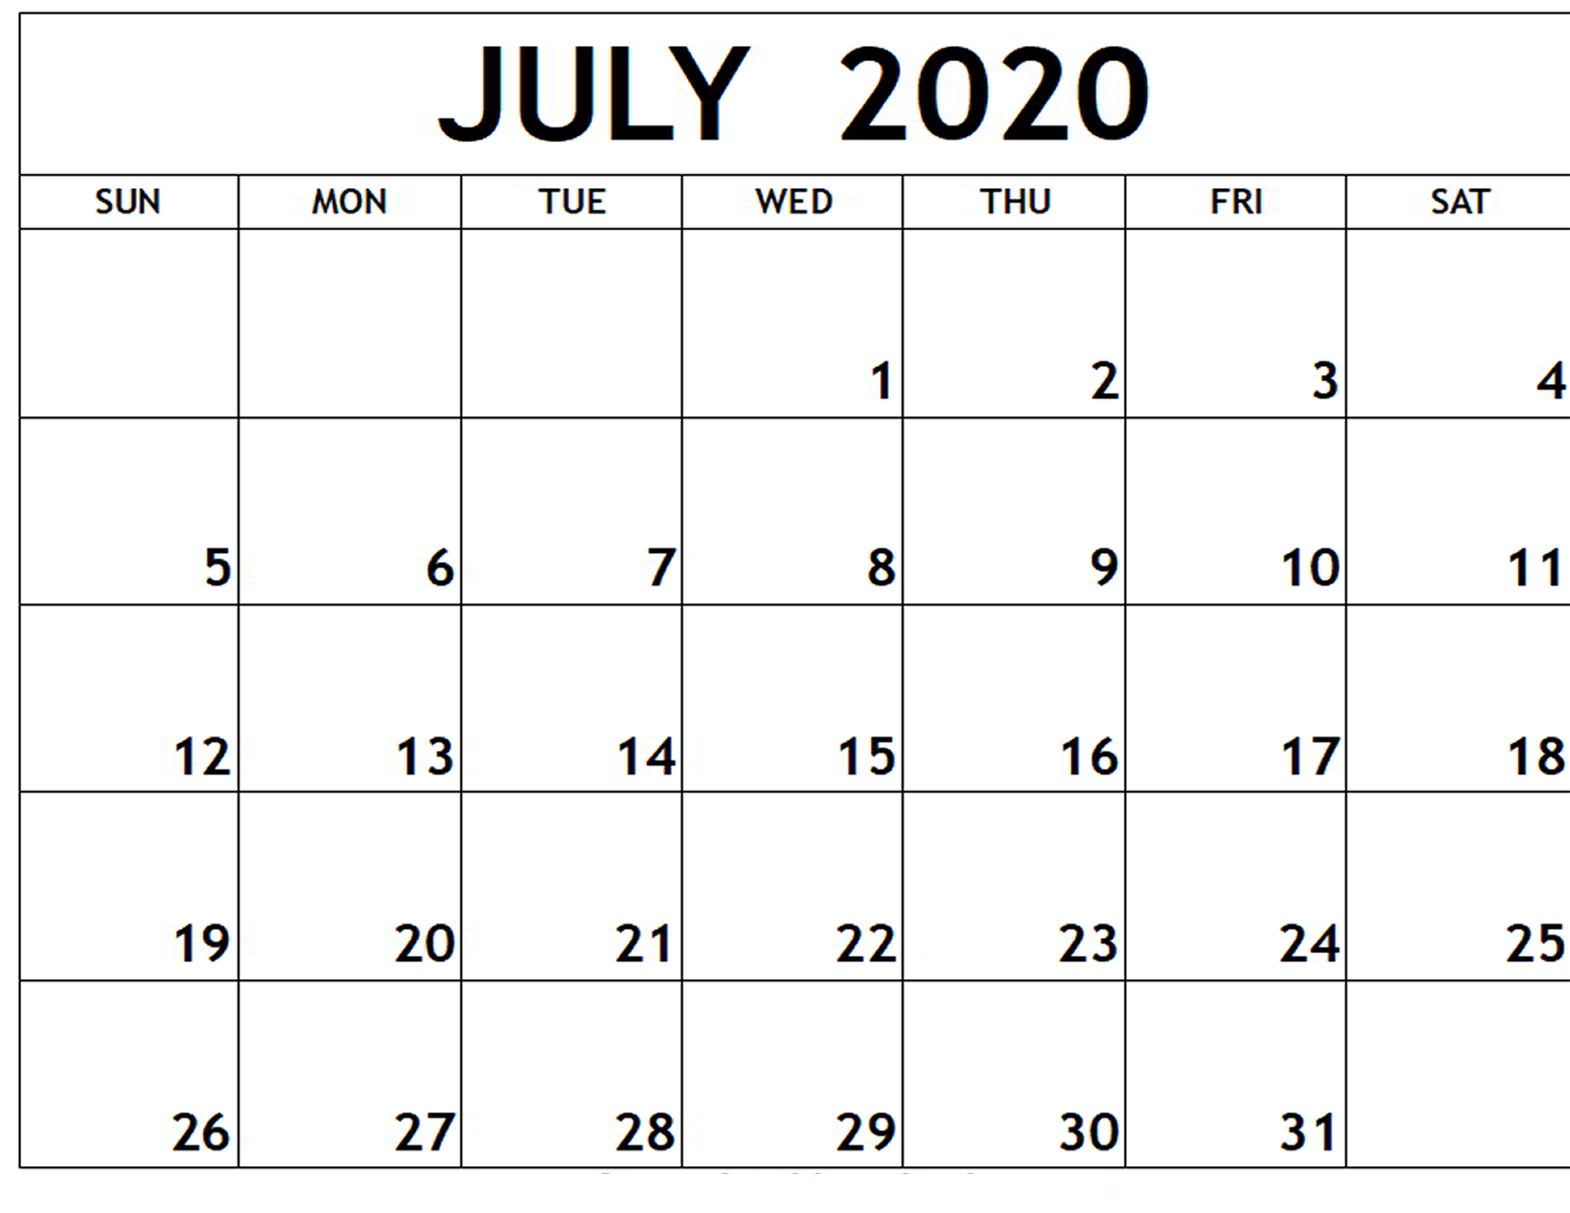 July 2020 Calendar Printable Excel